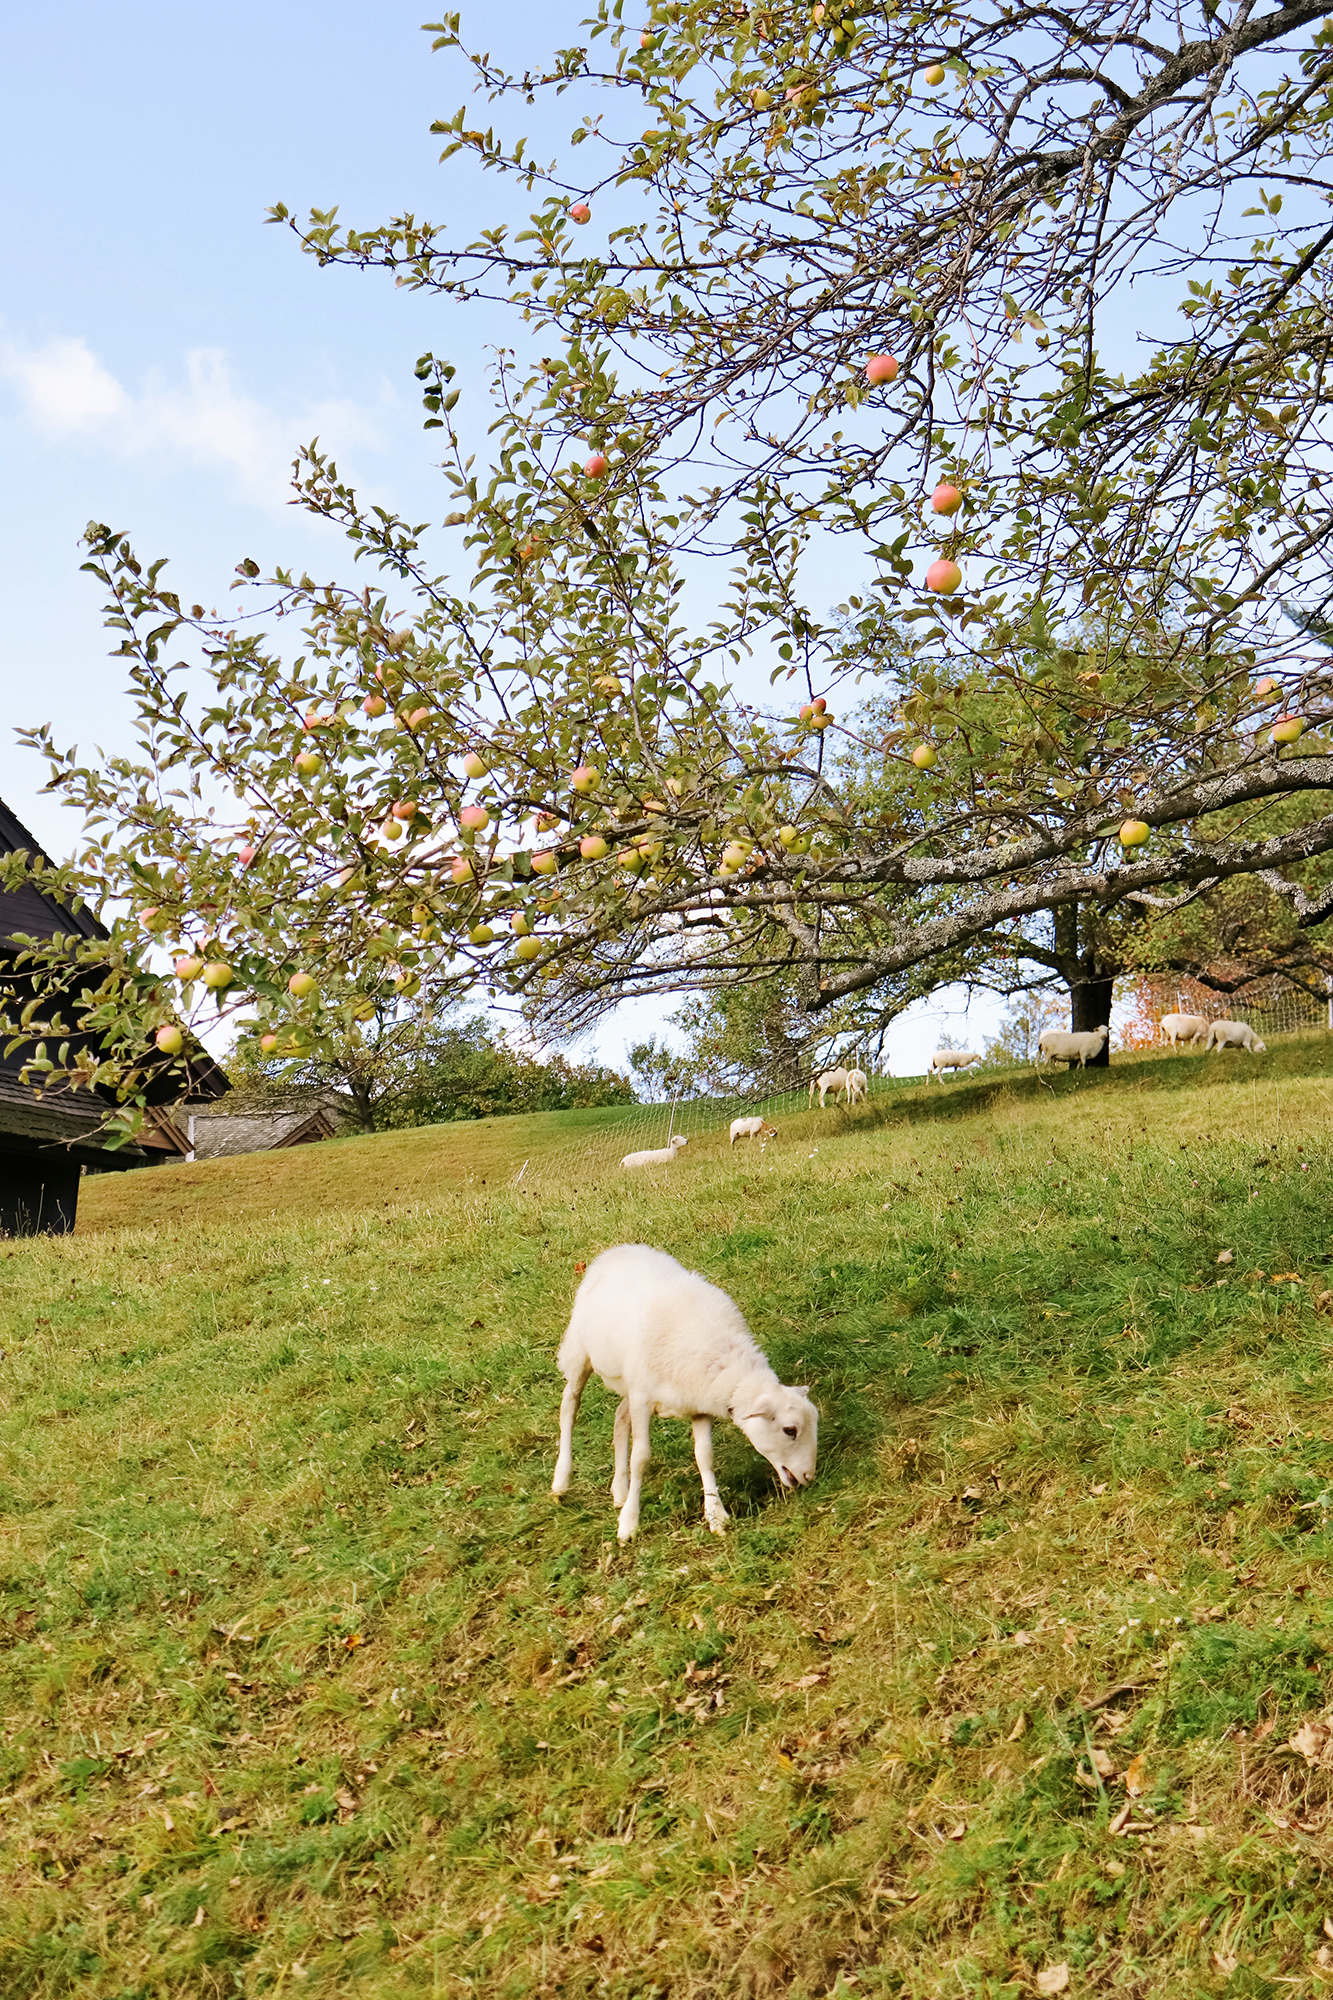 Adorable sheep grazing at the Von Trapp Family Lodge. While Leaf Peeping in Vermont 2019. | Kristy Wicks